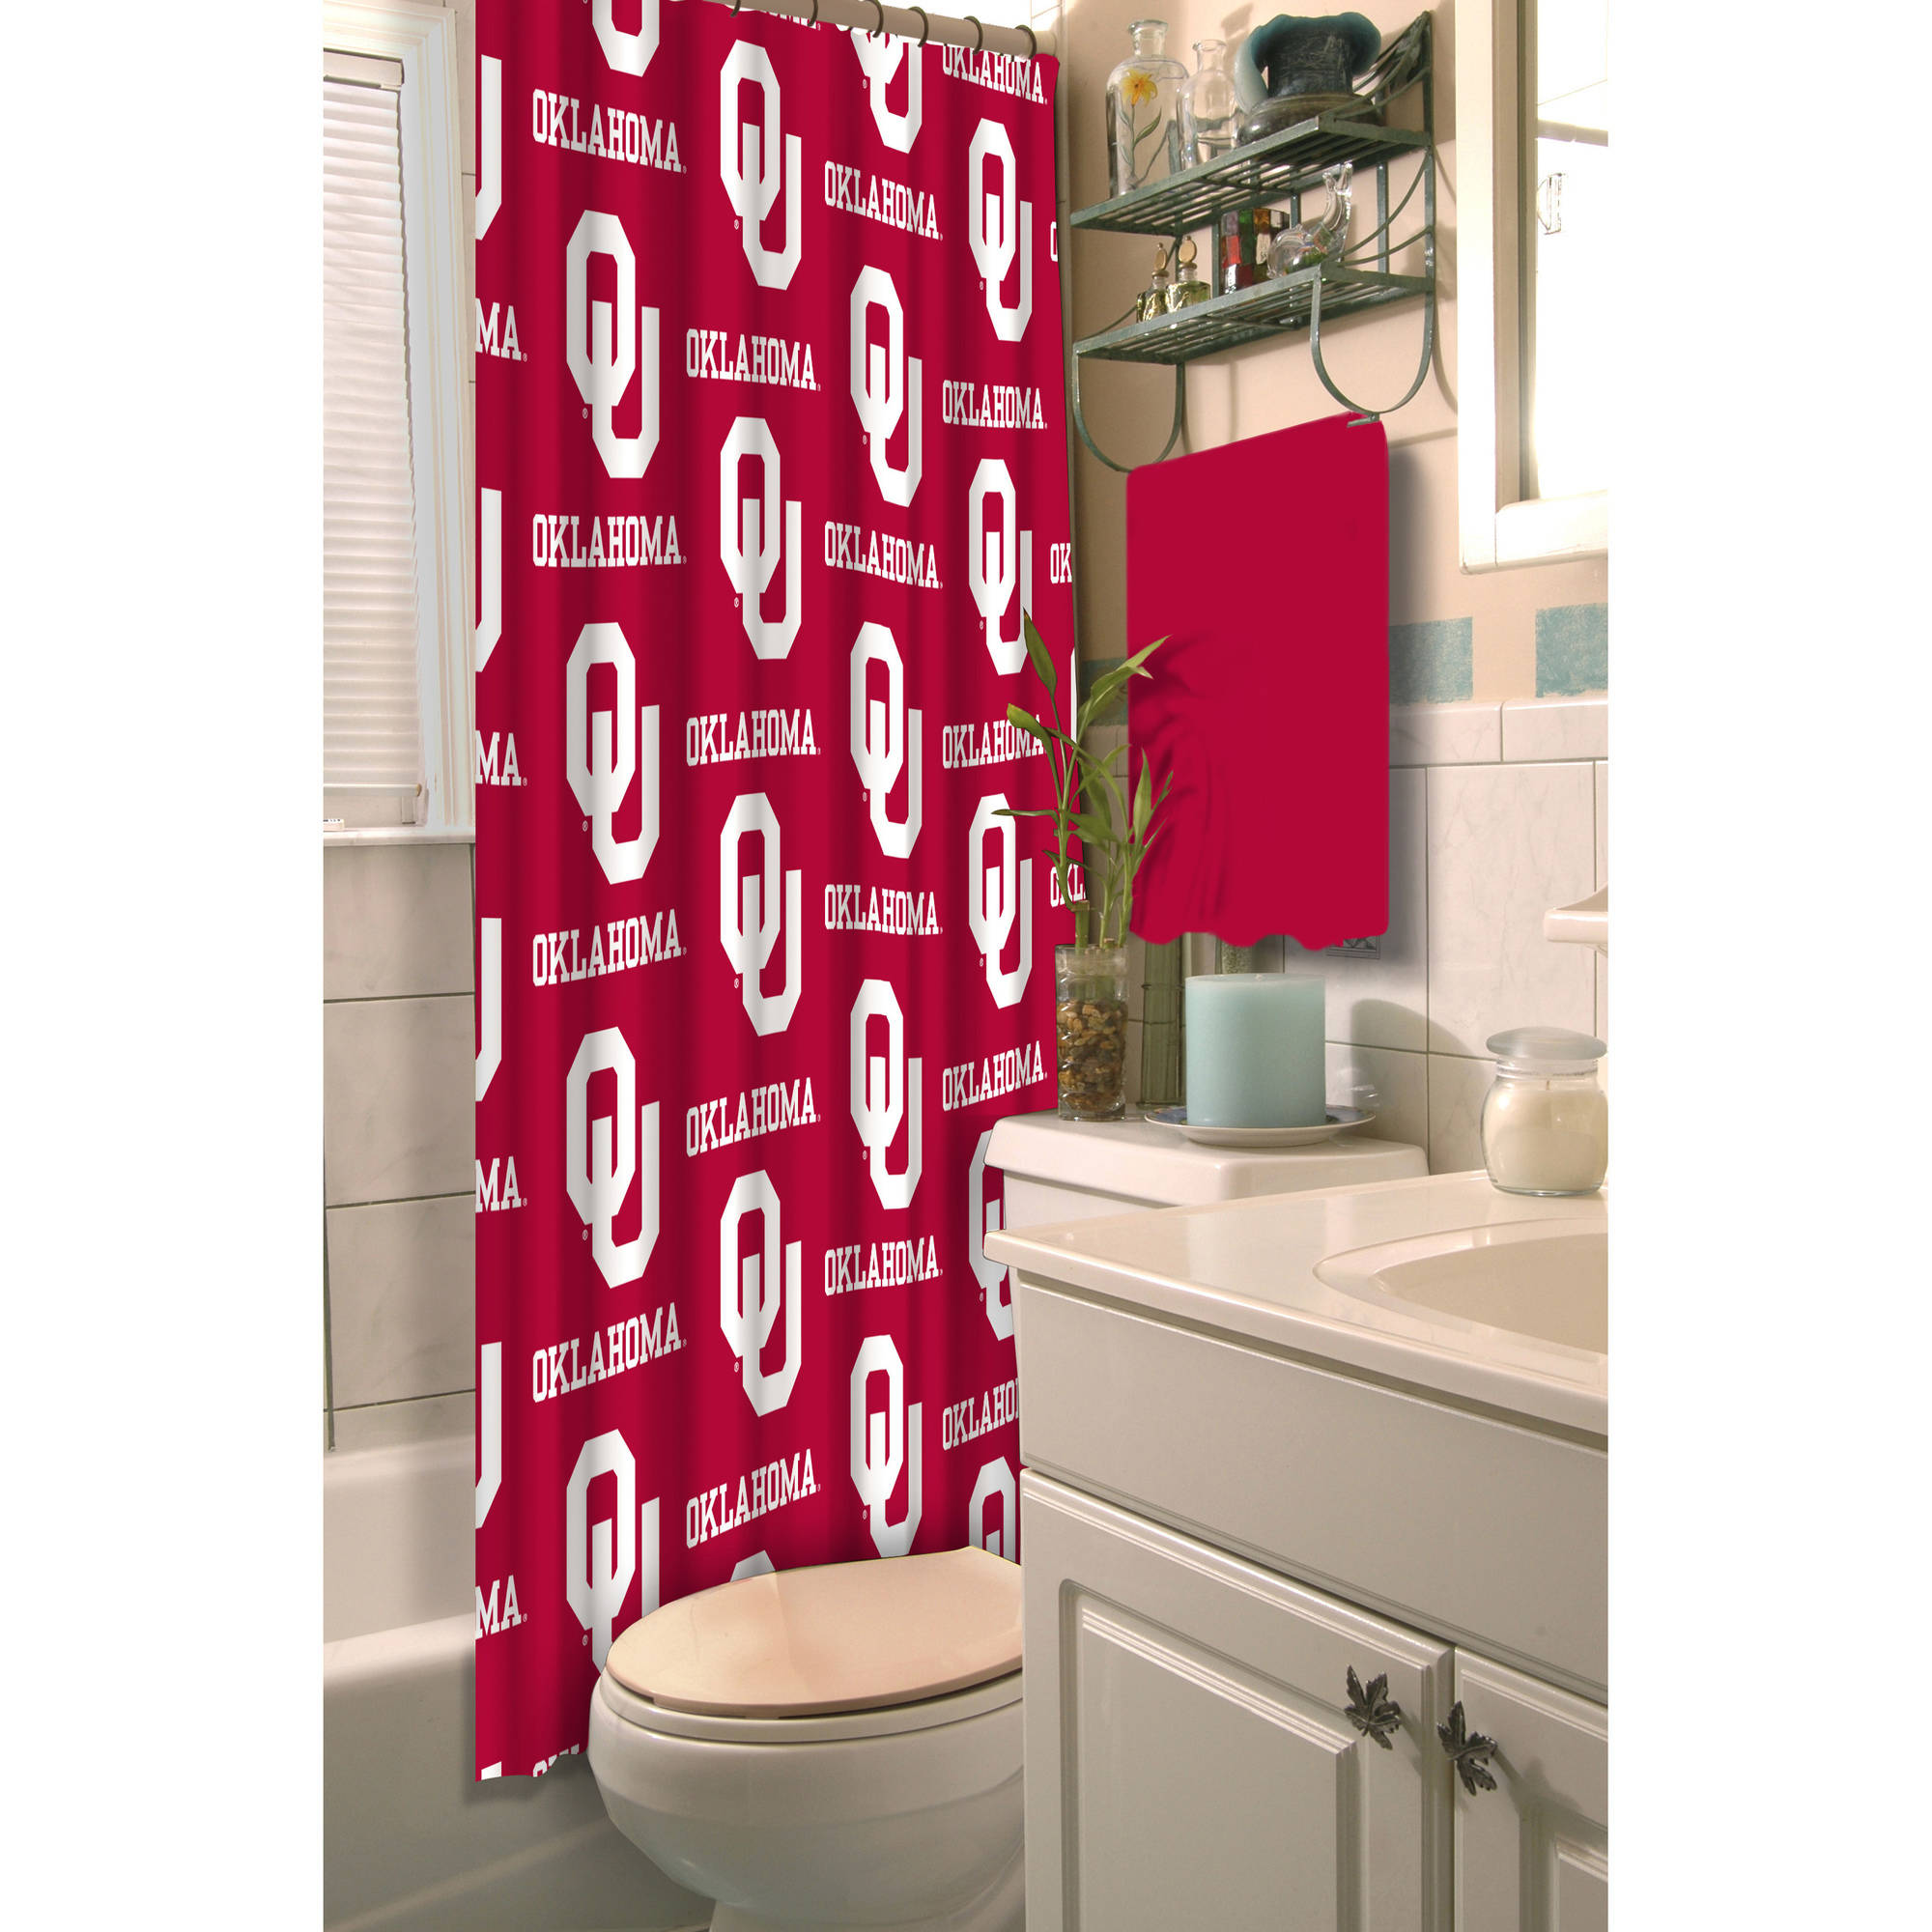 NCAA University of Oklahoma Decorative Bath Collection - Shower Curtain